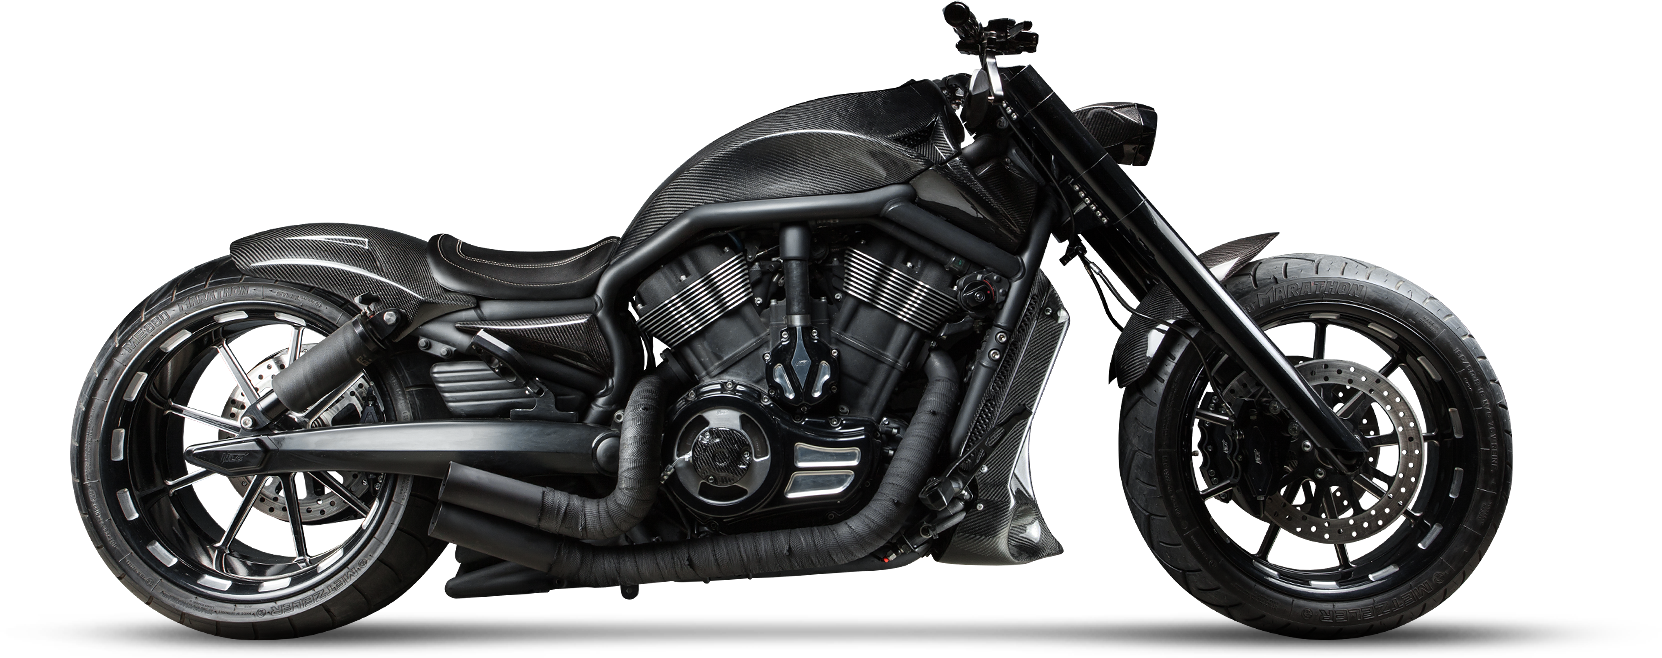 Harley Davidson Night Rod Карбон